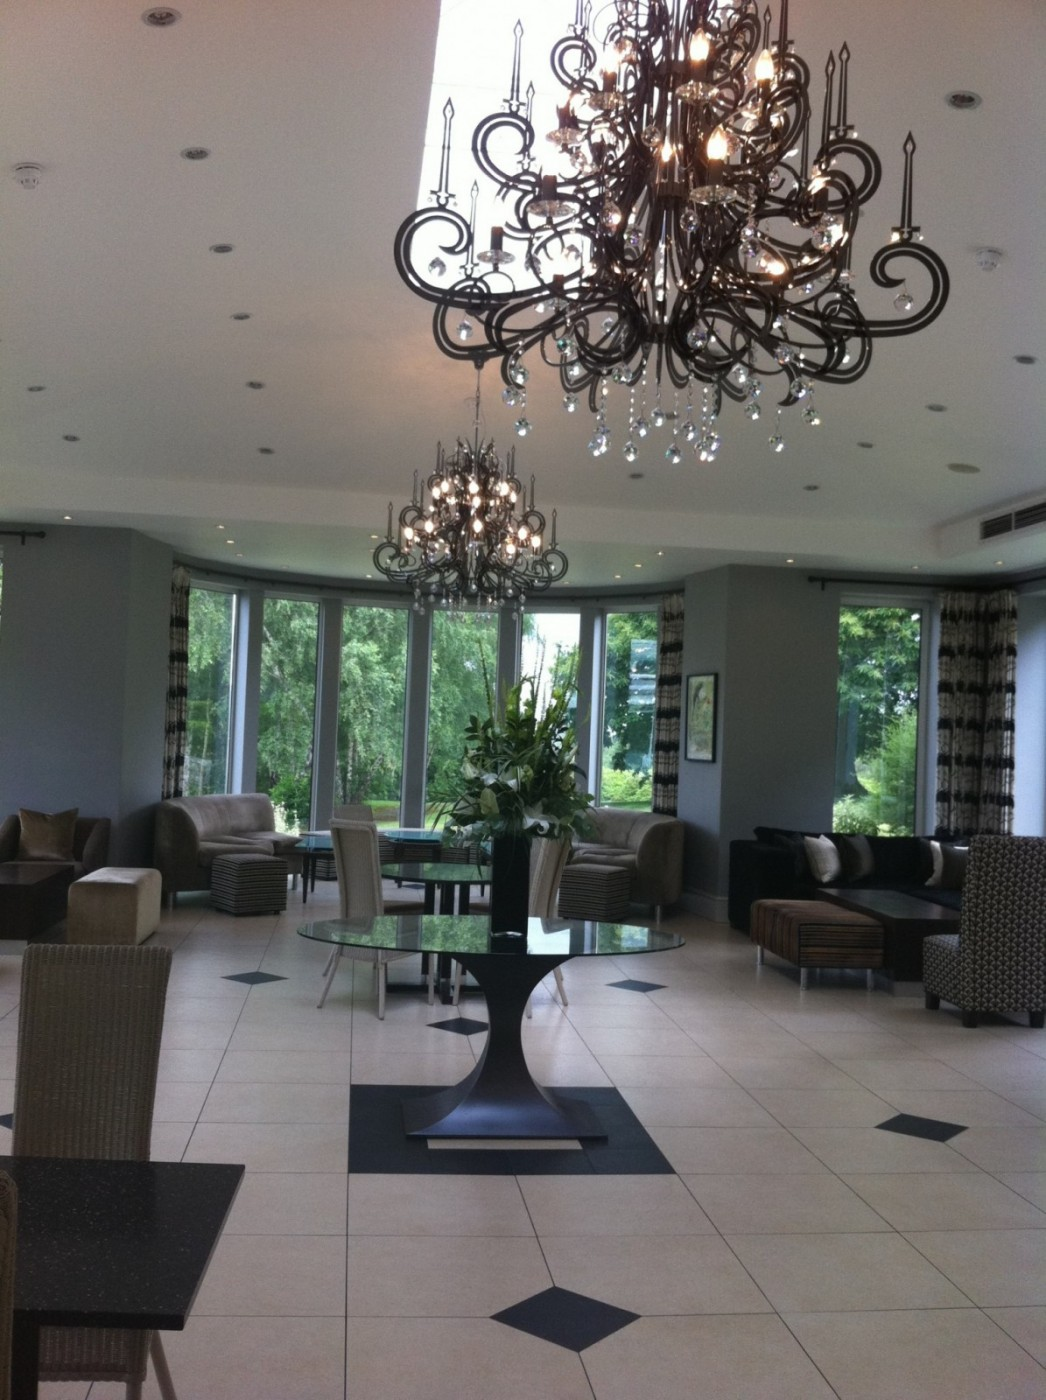 Researching and viewing venues: The Spa Hotel, Tunbridge Wells